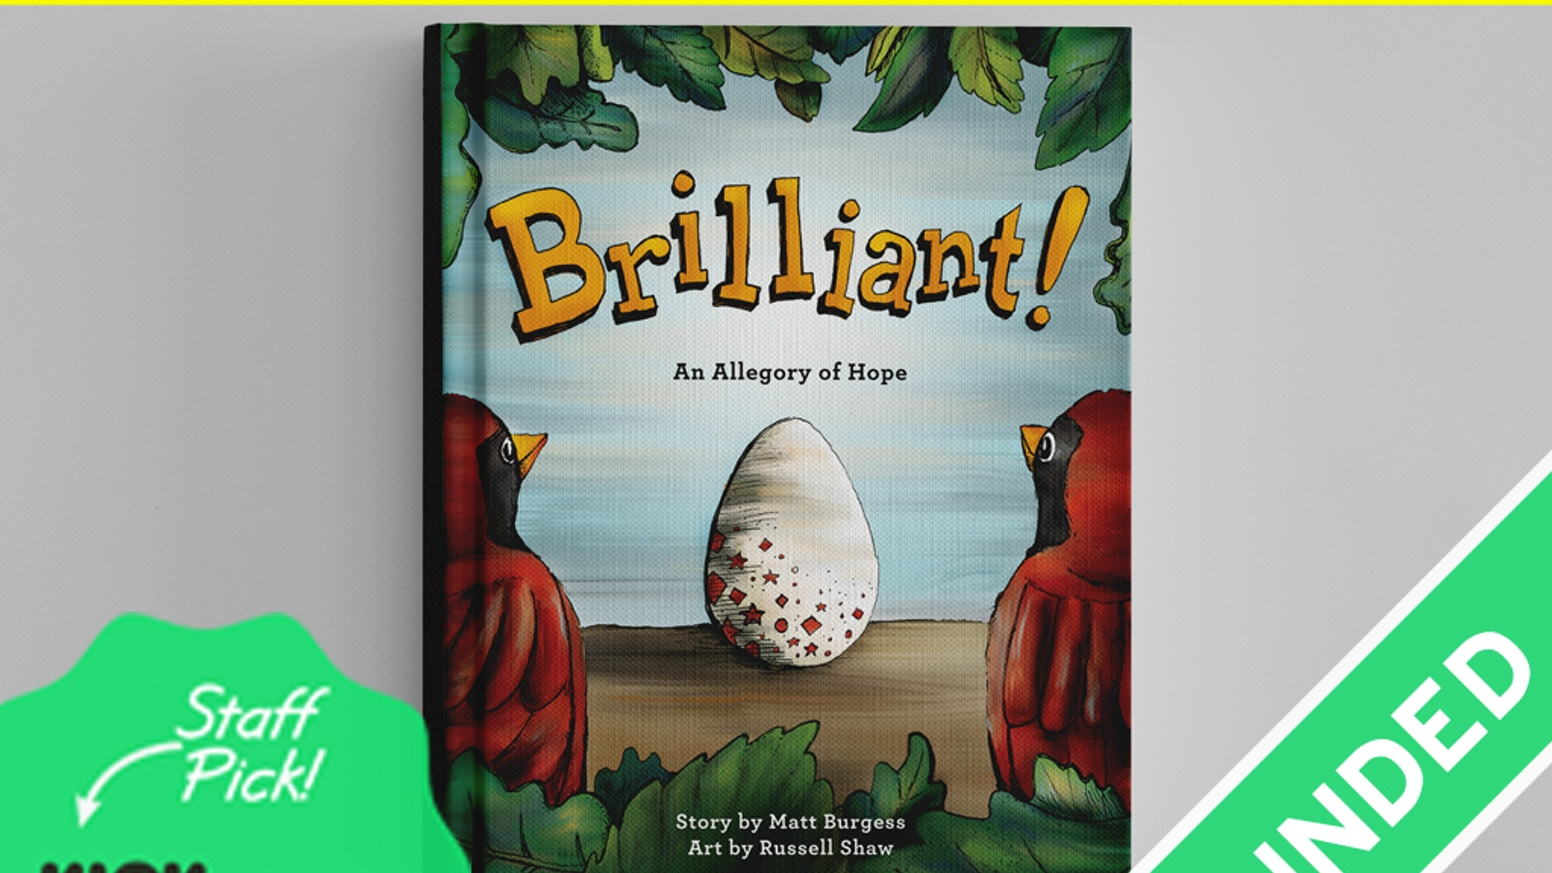 A whimsical adventure that unexpectedly inspires parents. A professionally illustrated book, especially for adoptive & foster families.